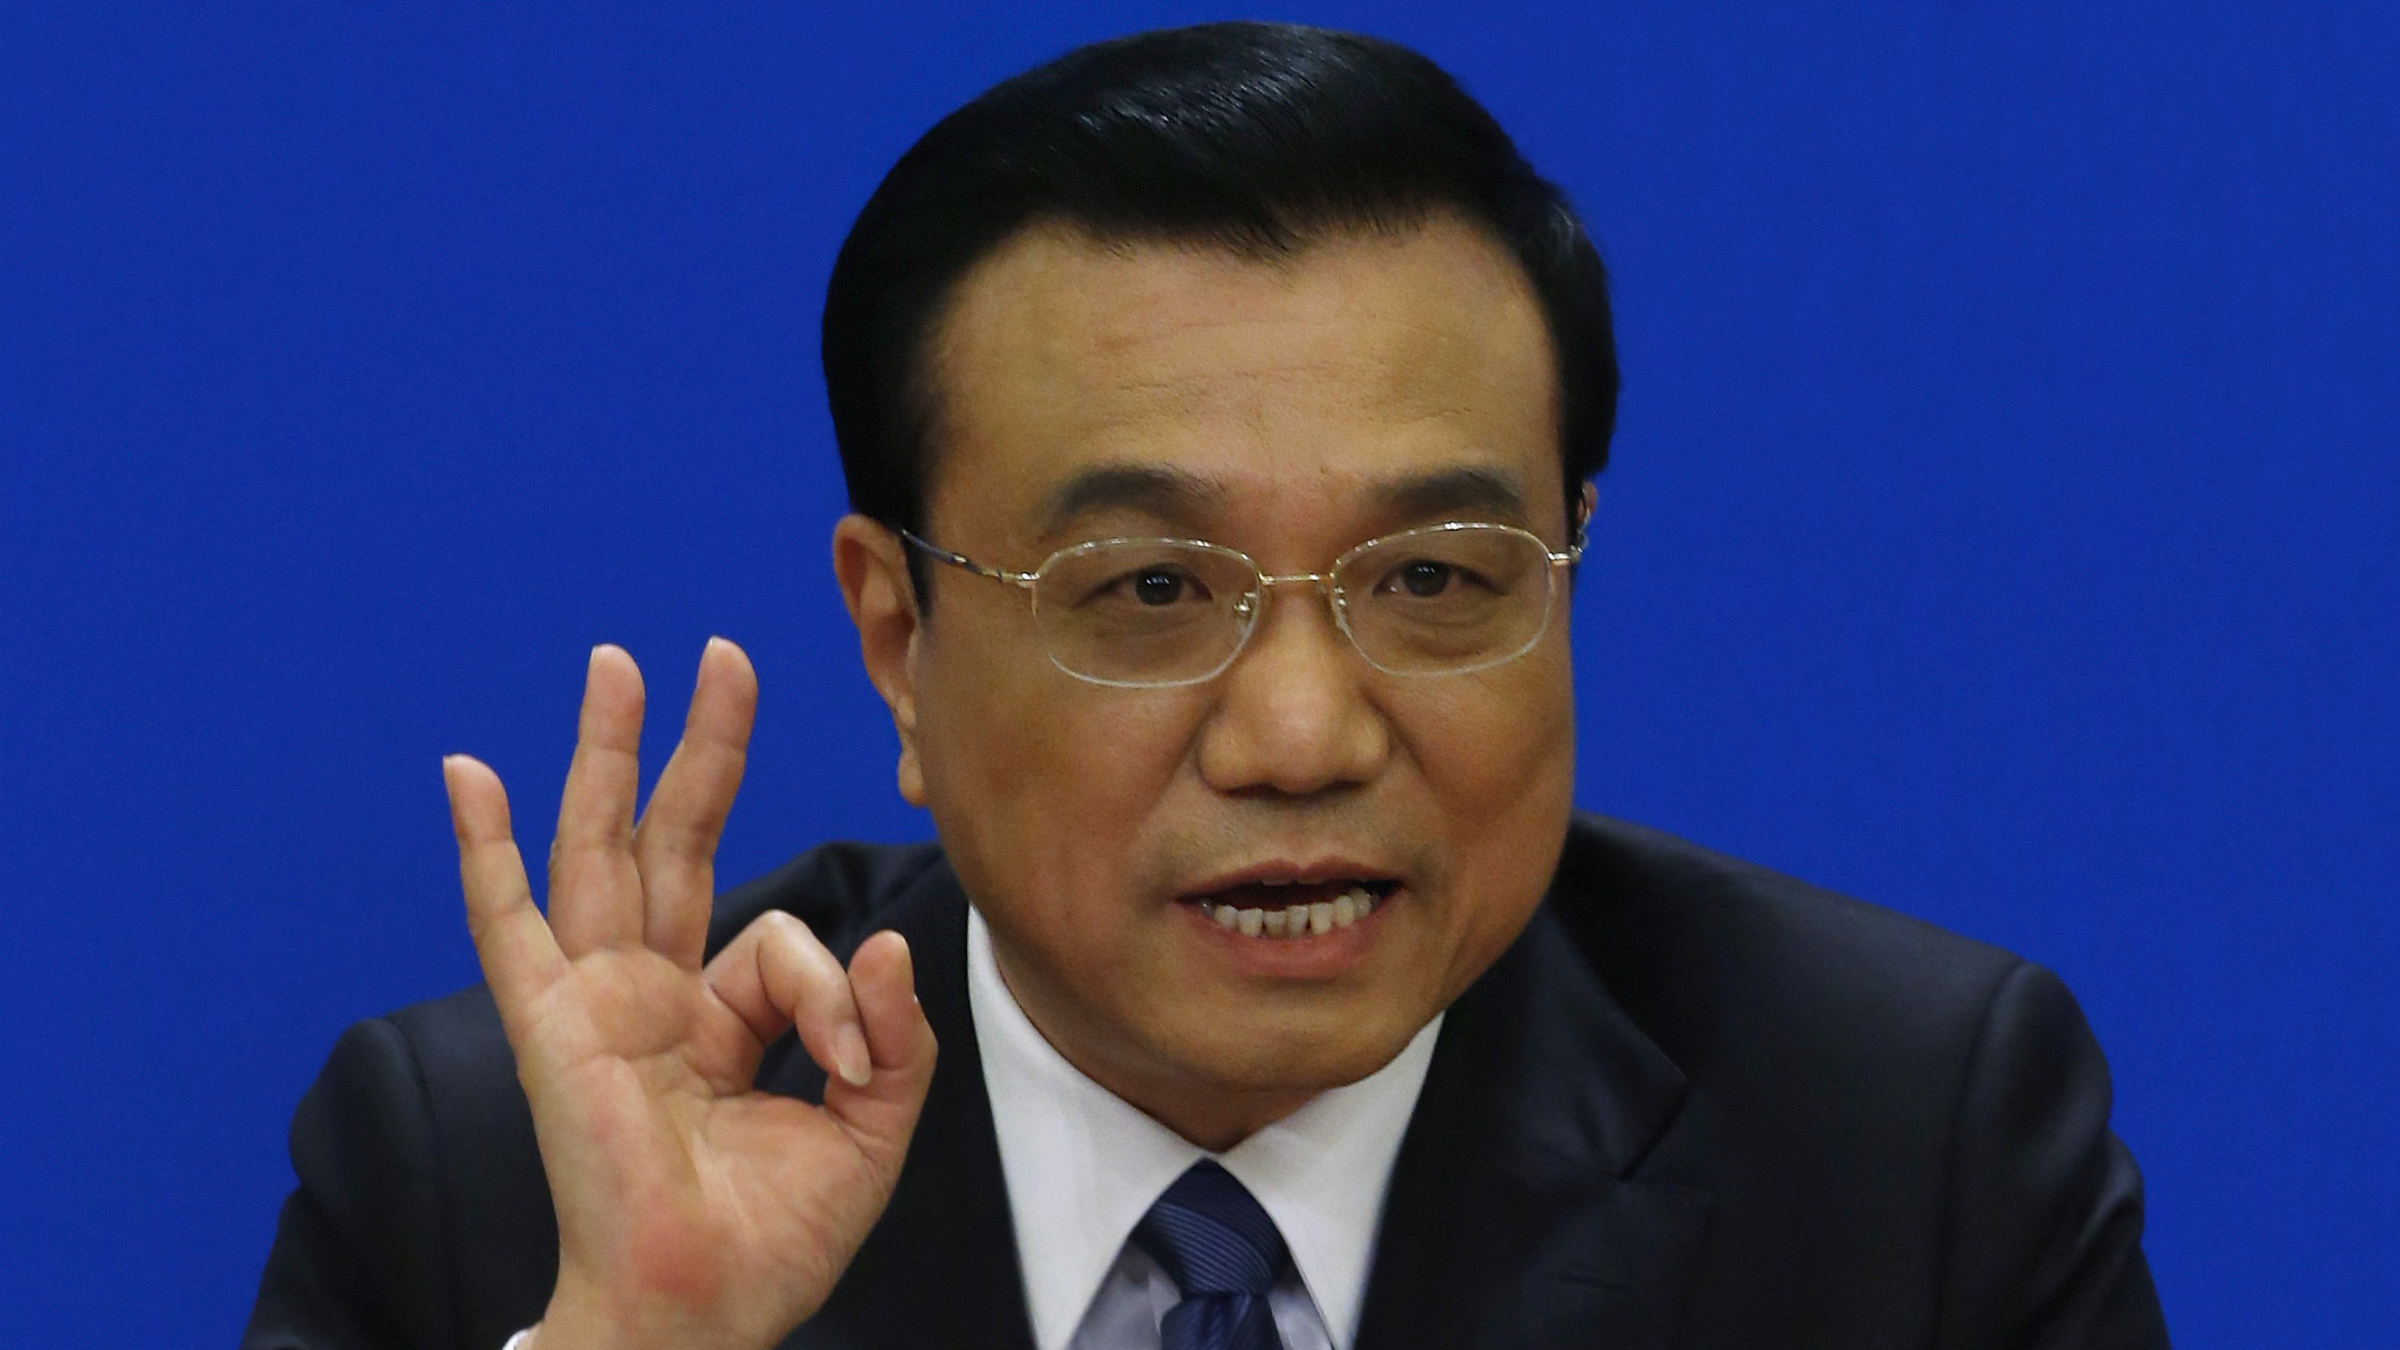 China's Premier Li Keqiang gestures as he speaks during a news conference, after the closing ceremony of the Chinese National People's Congress (NPC) at the Great Hall of the People, in Beijing, March 13, 2014. REUTERS/Barry Huang